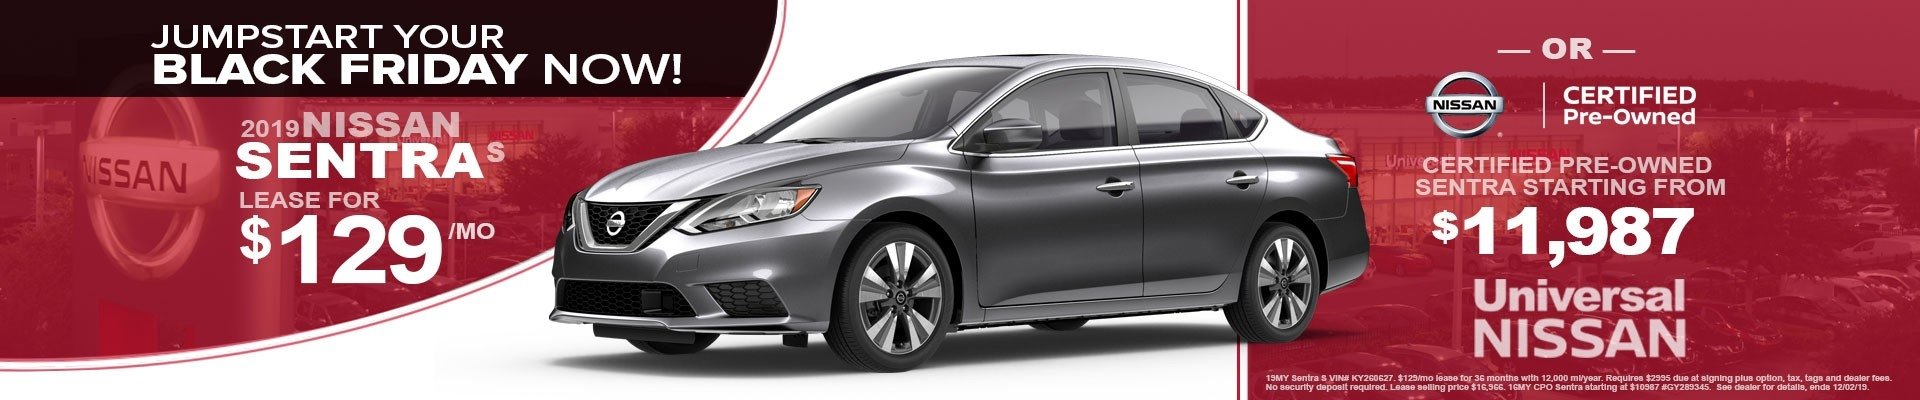 SENTRA Leases Starting at $129 Per Month